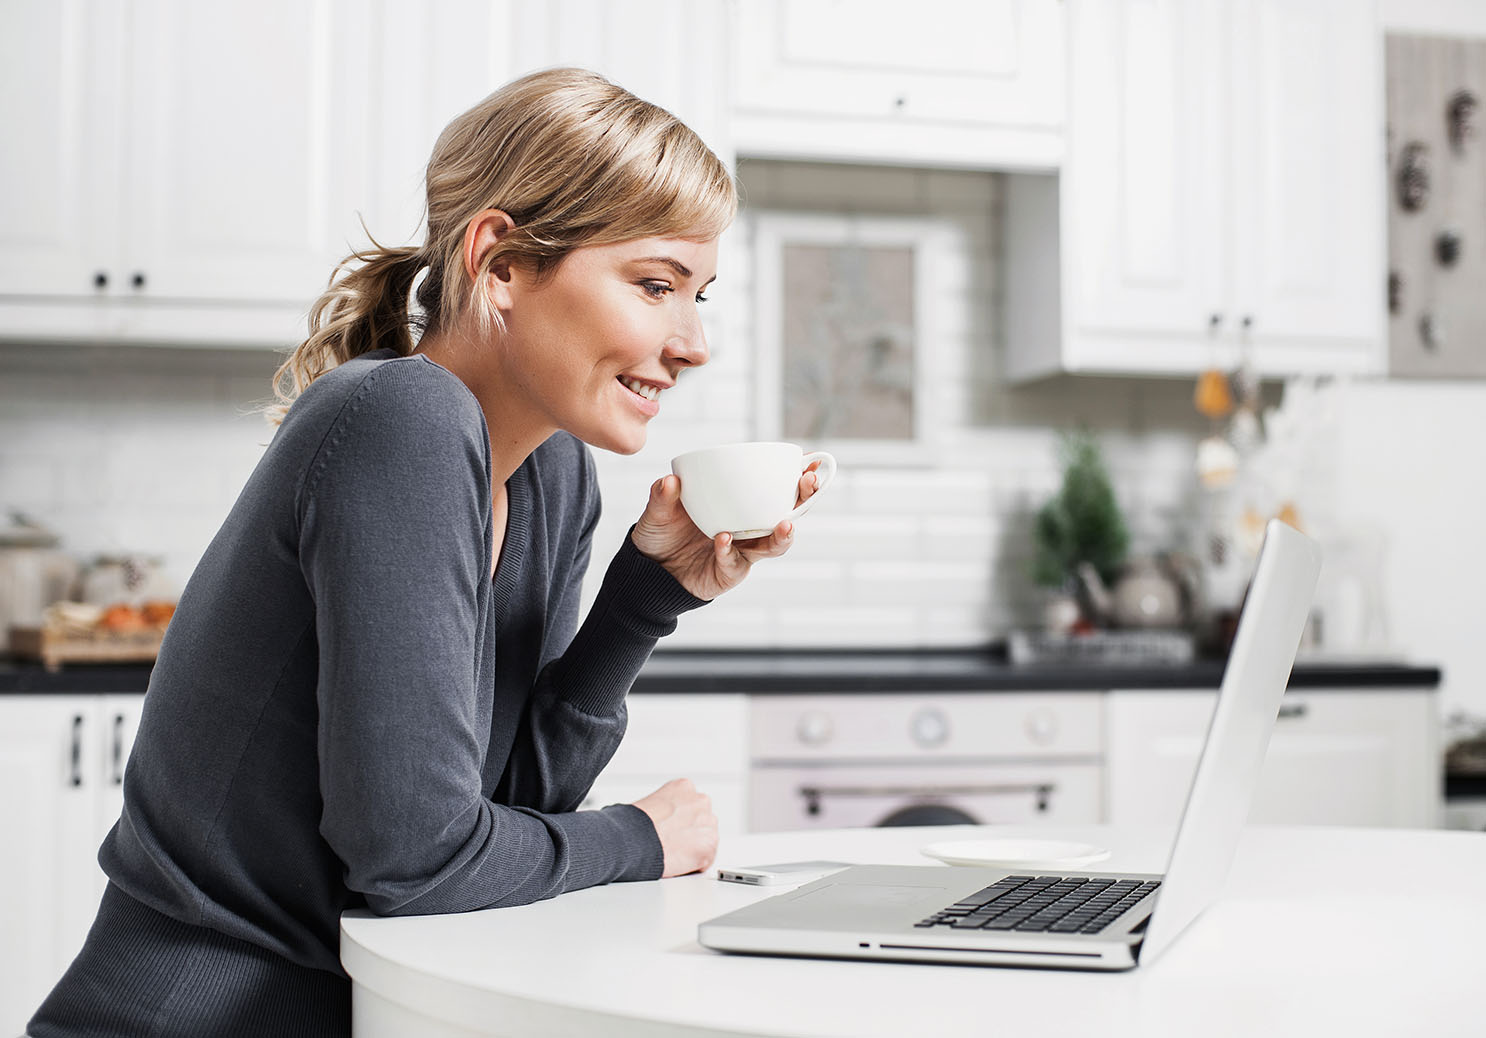 Young woman finding helpful medical information online